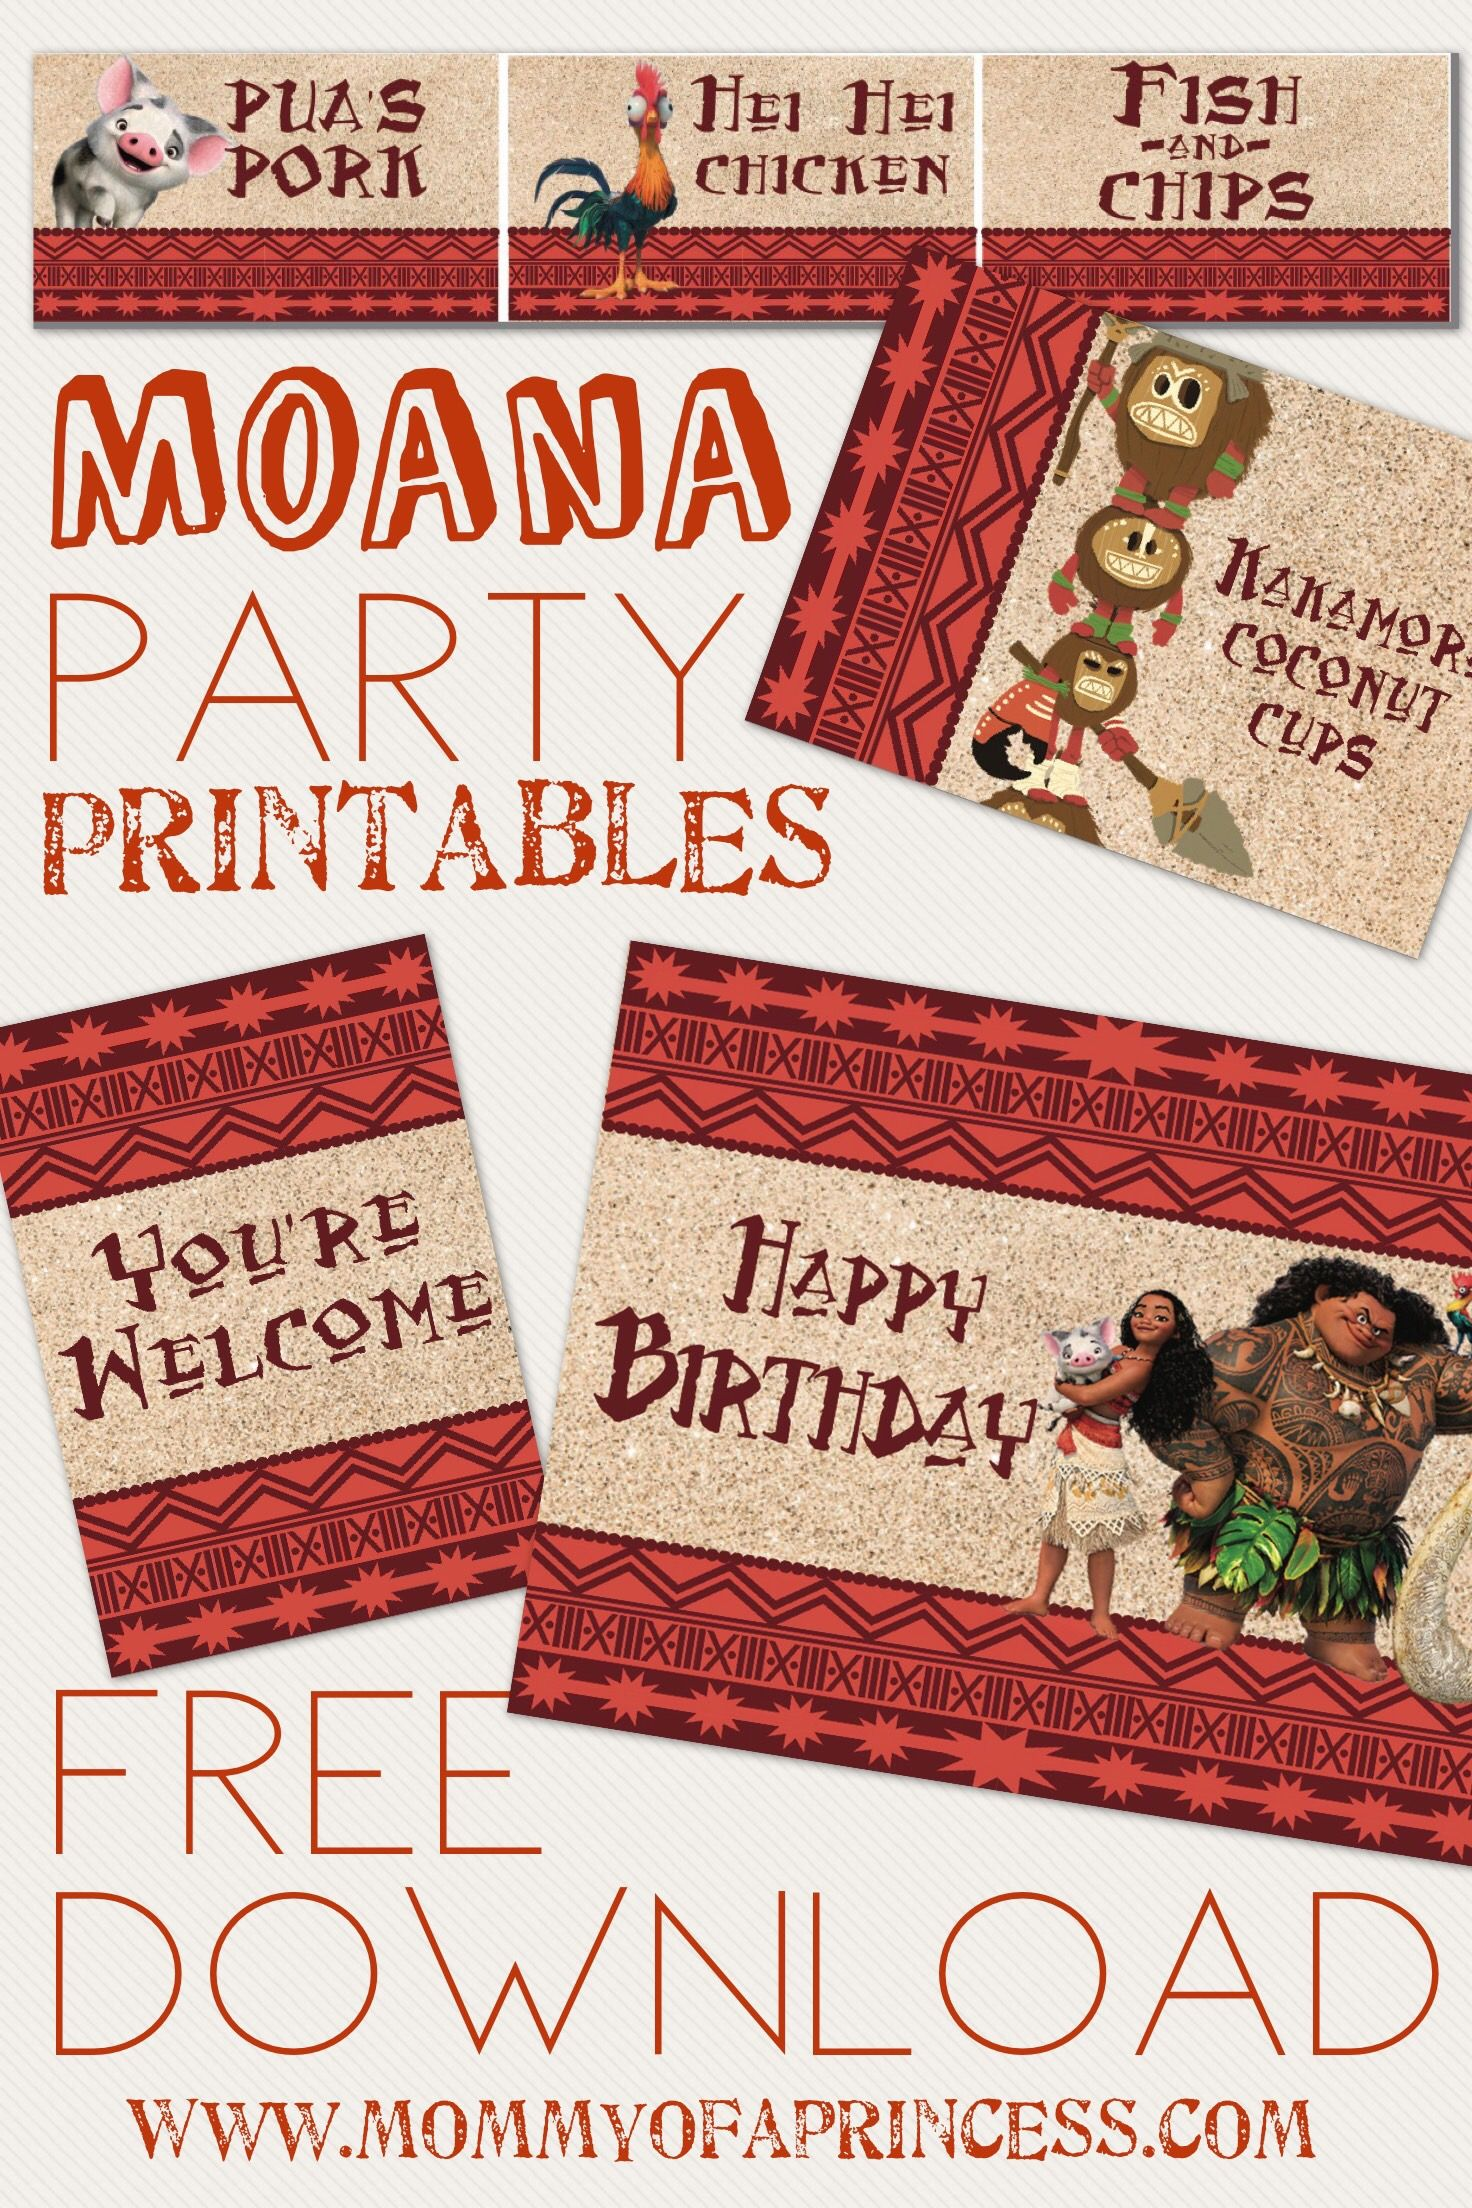 Moana Birthday Party Printables Moana Party Food Ideas